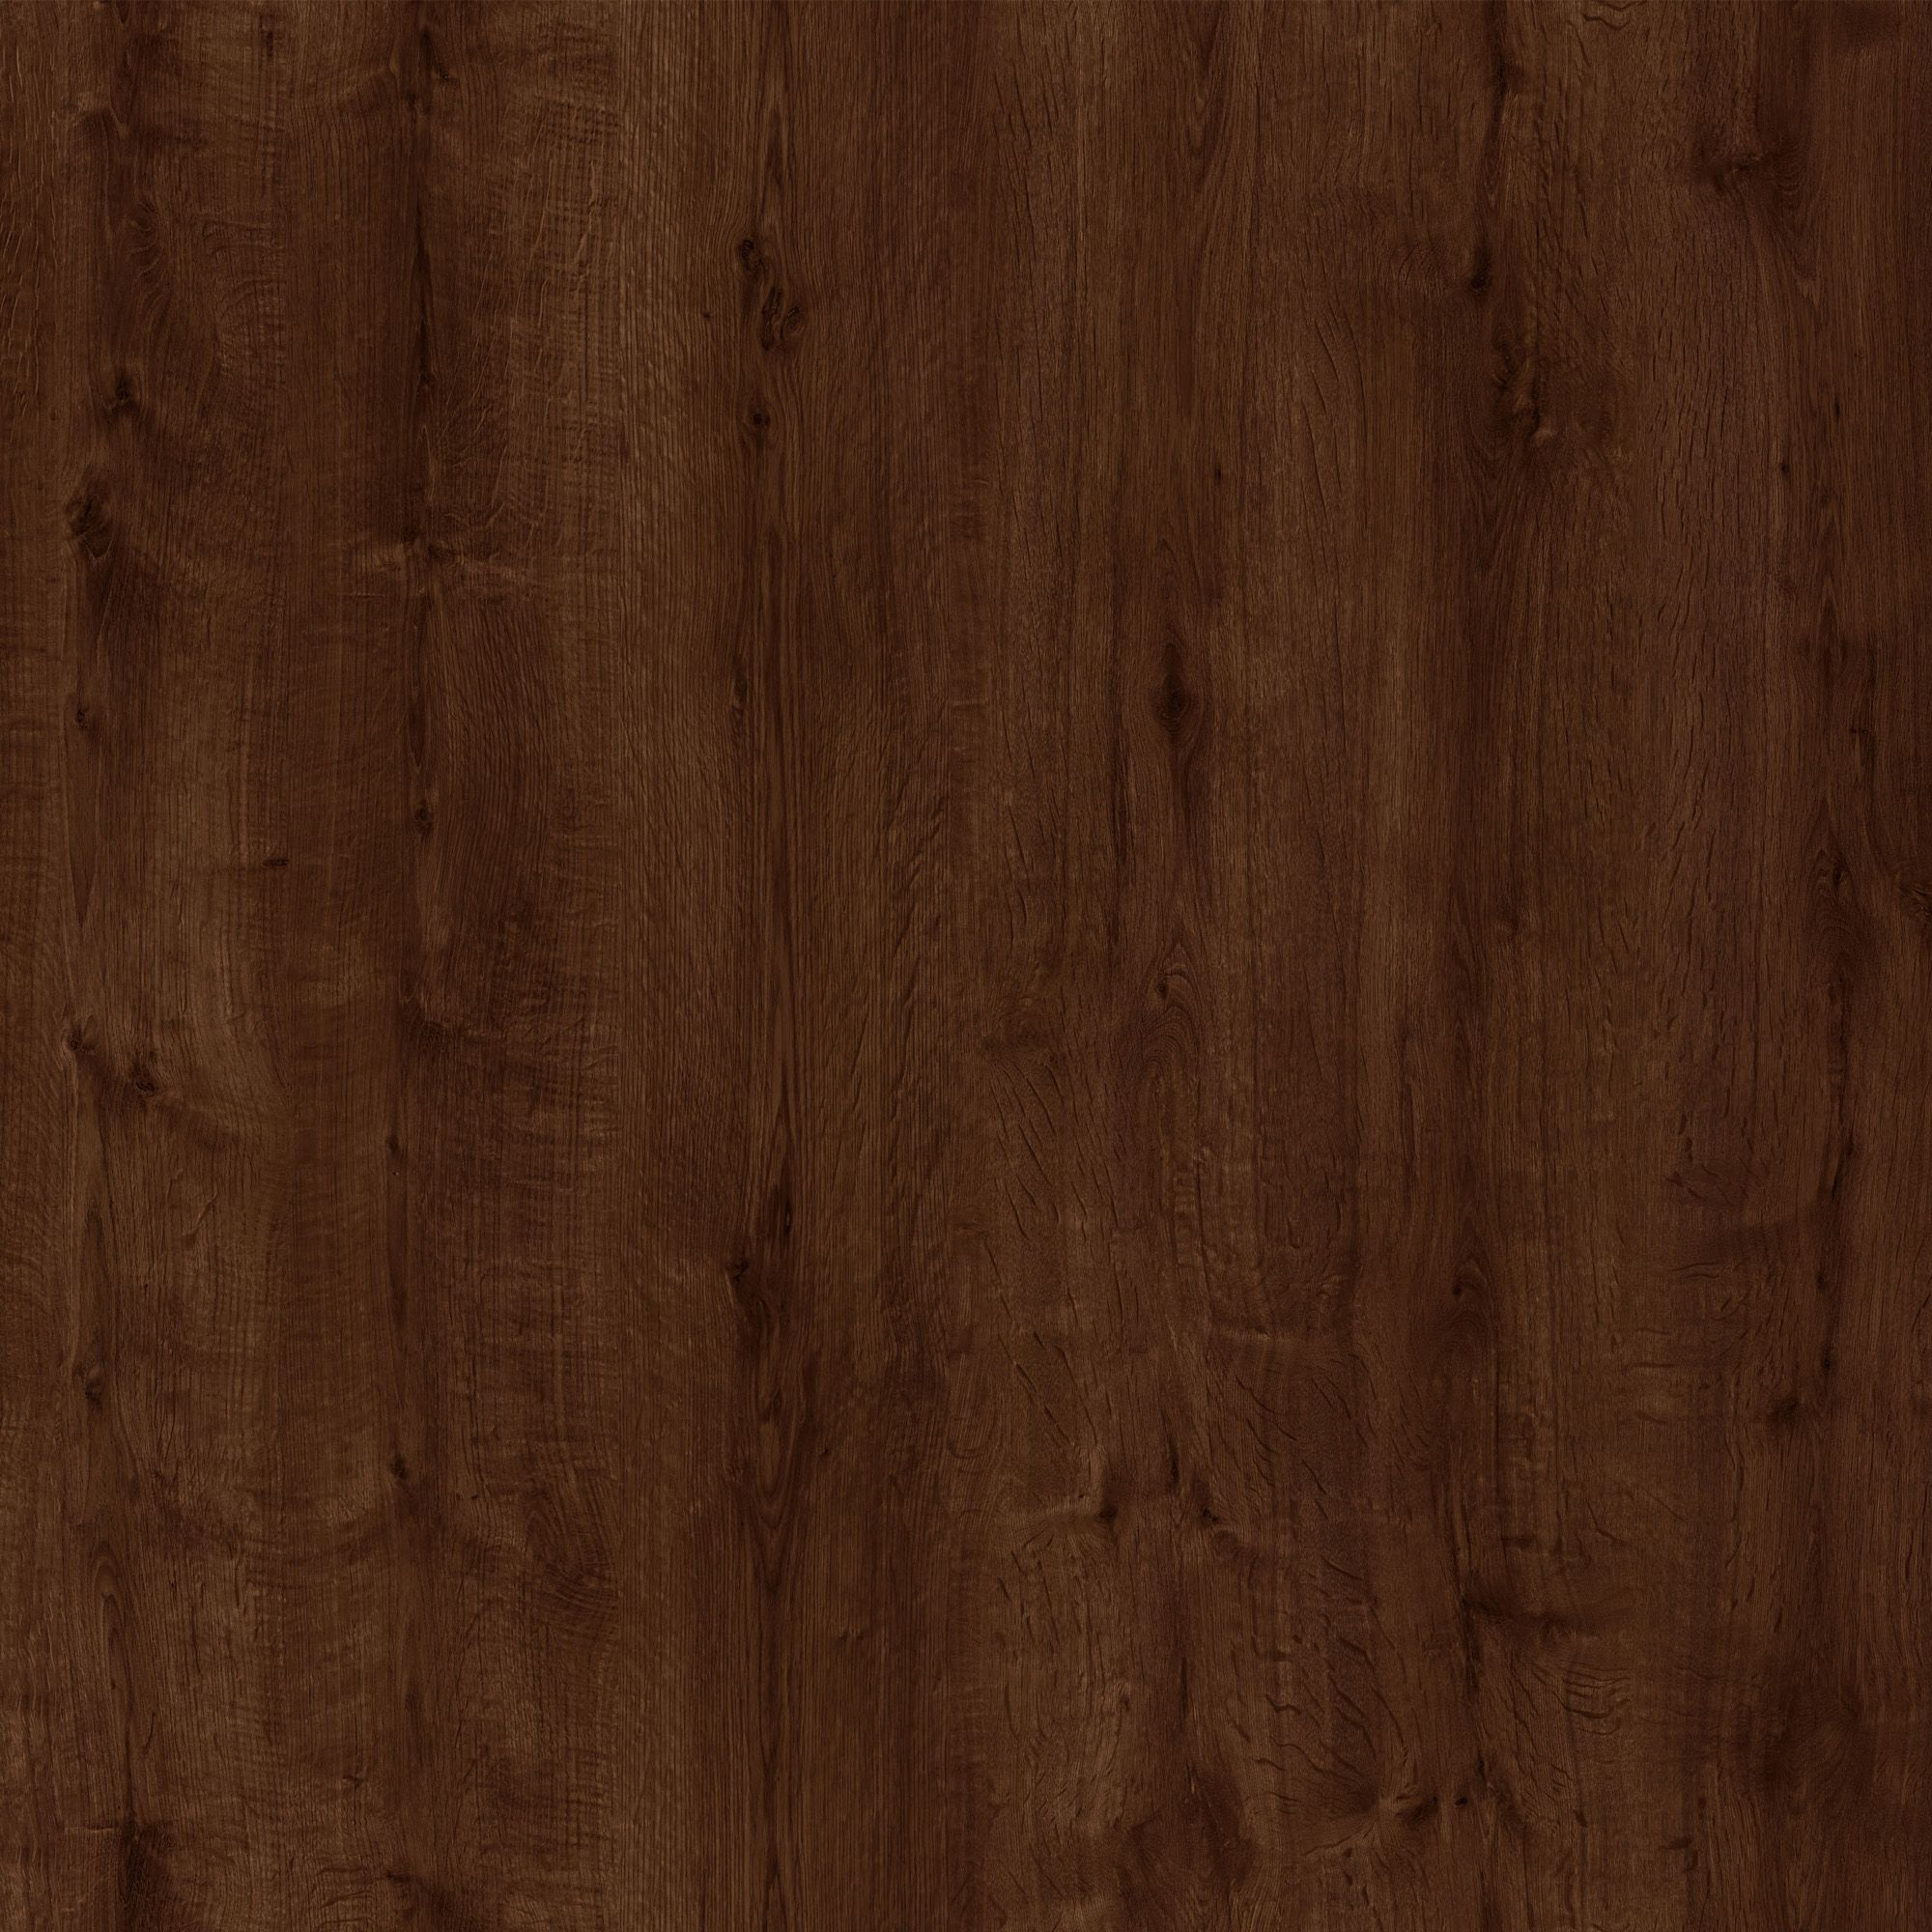 Concertino Prestige Dark Oak Effect Laminate Flooring 1 48